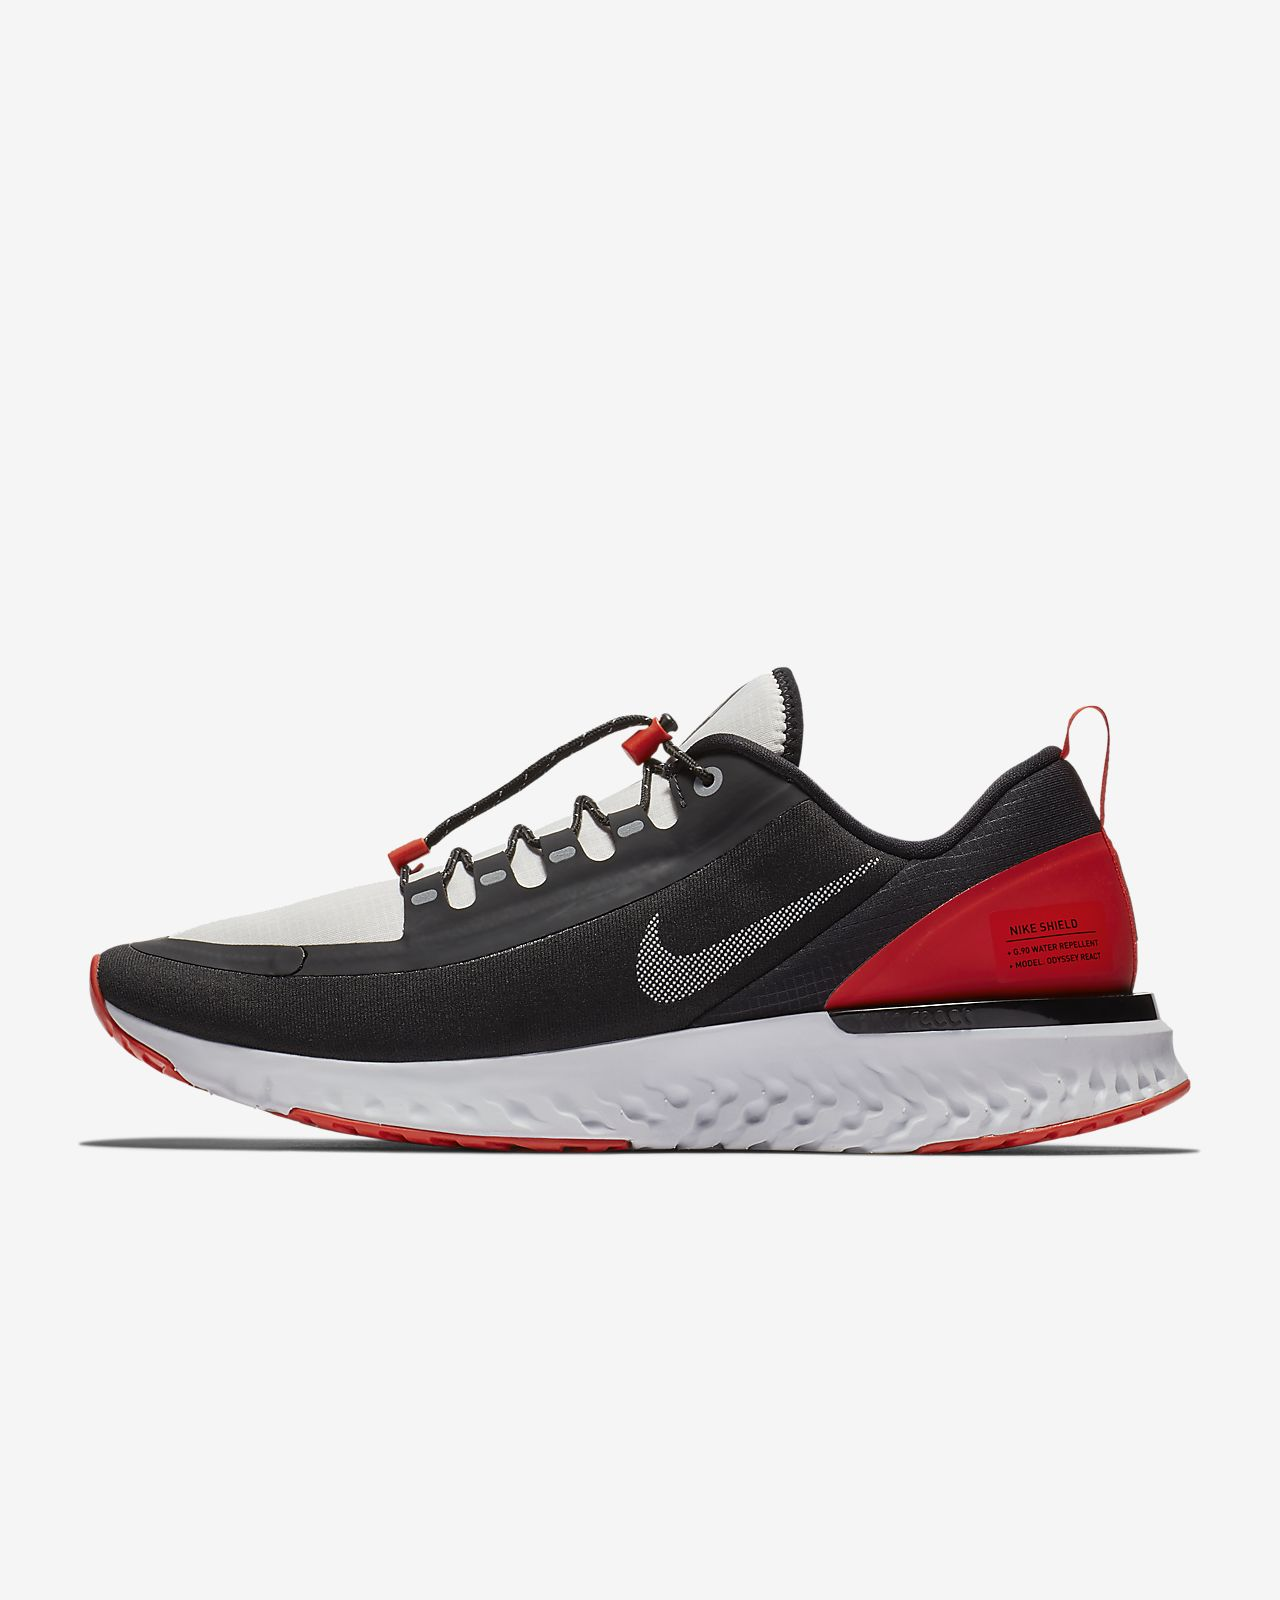 De Nike Chaussure React Running Shield Water Pour Odyssey Homme Repellent 9H2EWYDI